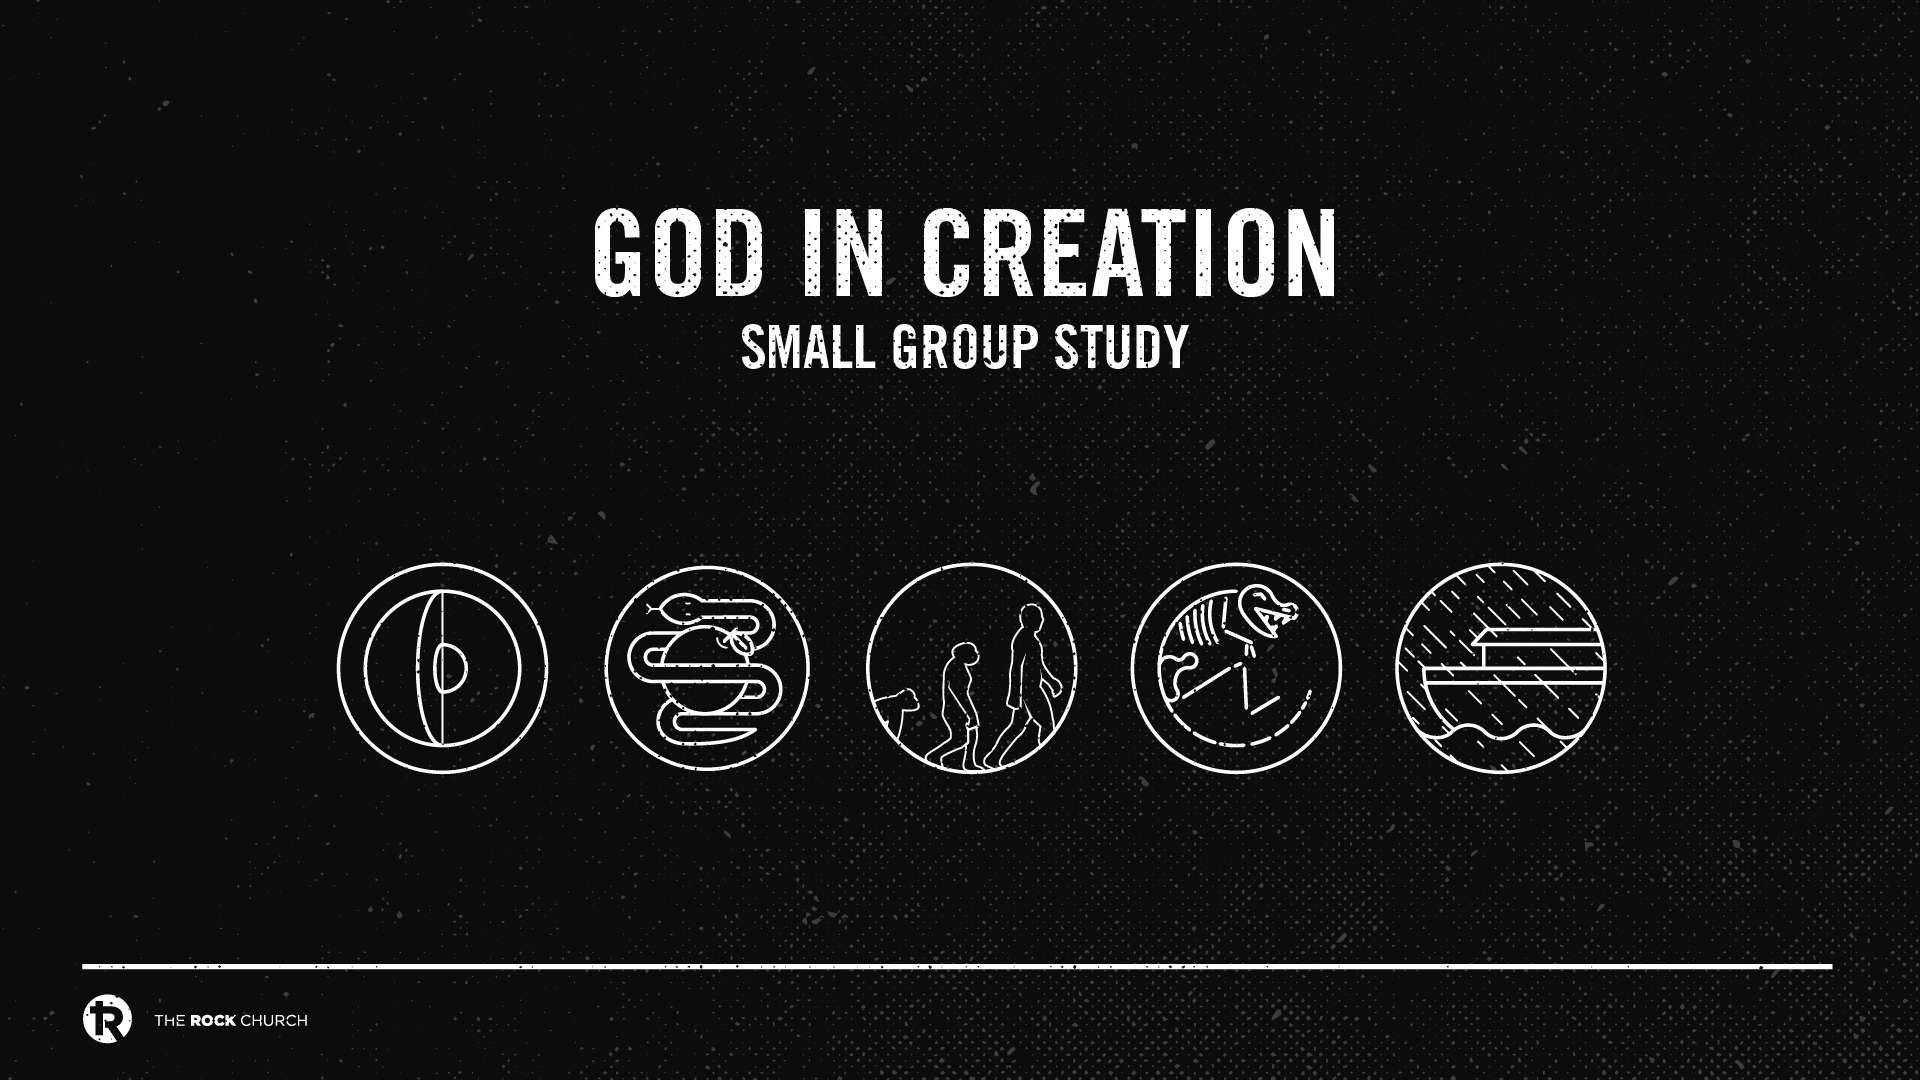 God in Creation: Small Group Study